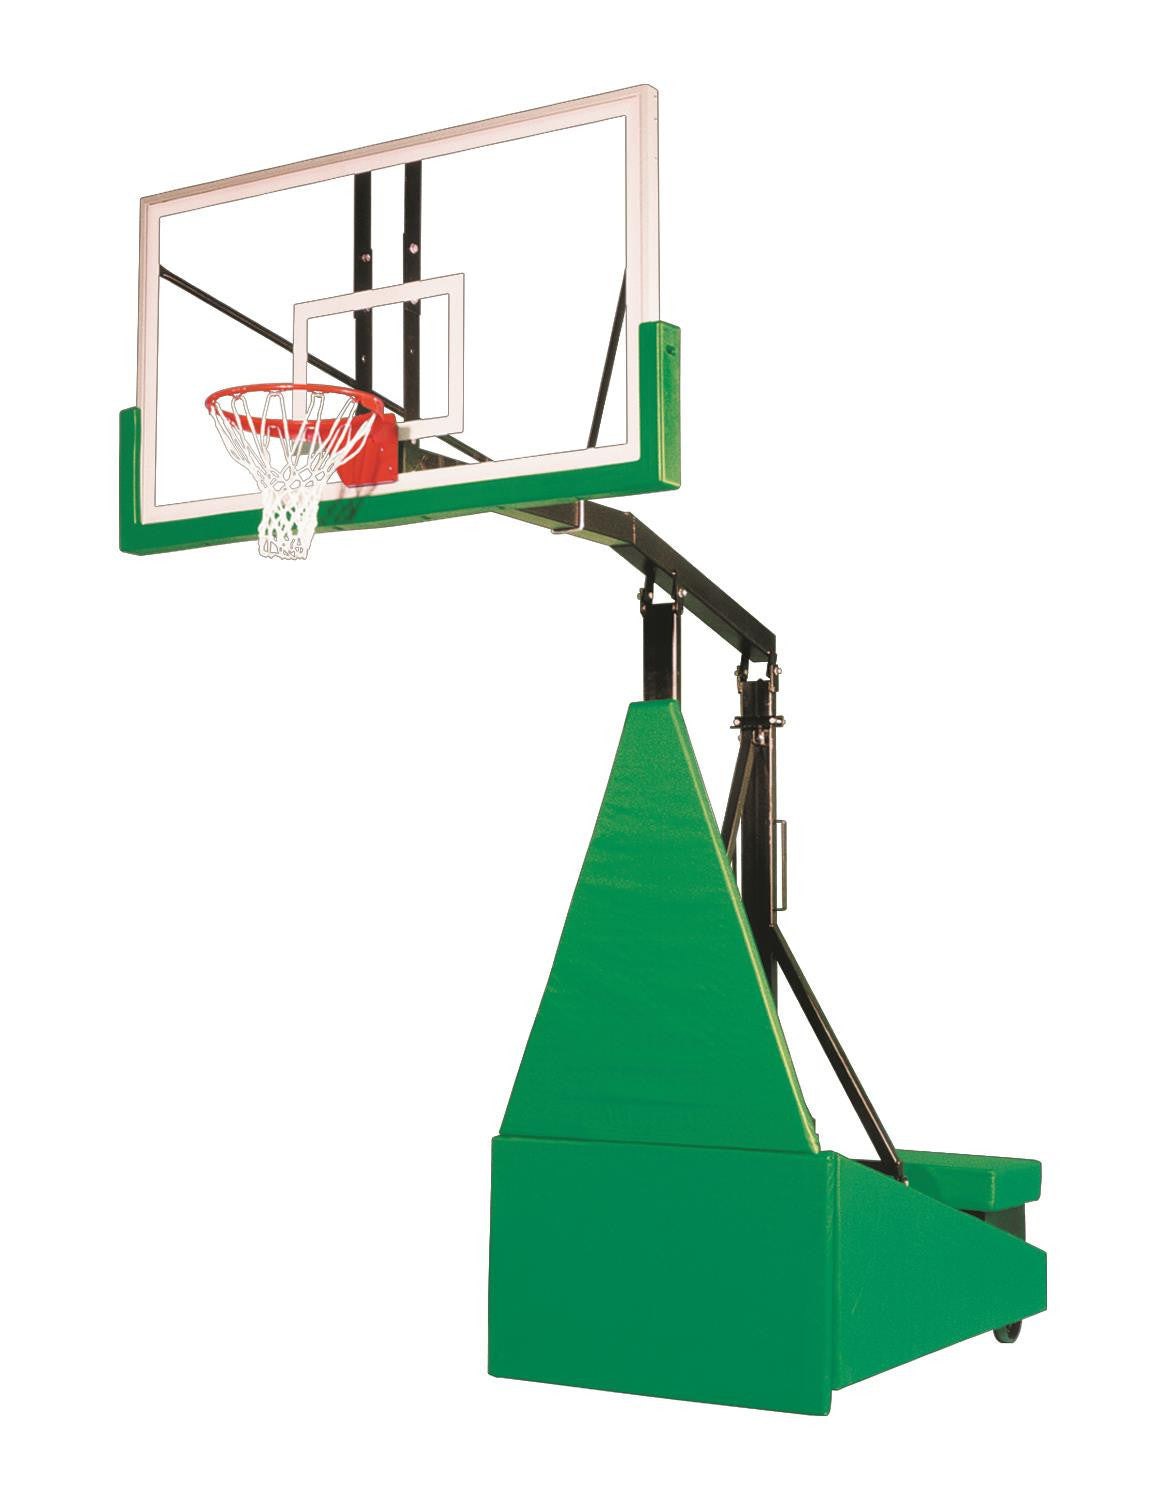 First Team Storm Arena Portable Adjustable Basketball Hoop 72 inch Tempered Glass